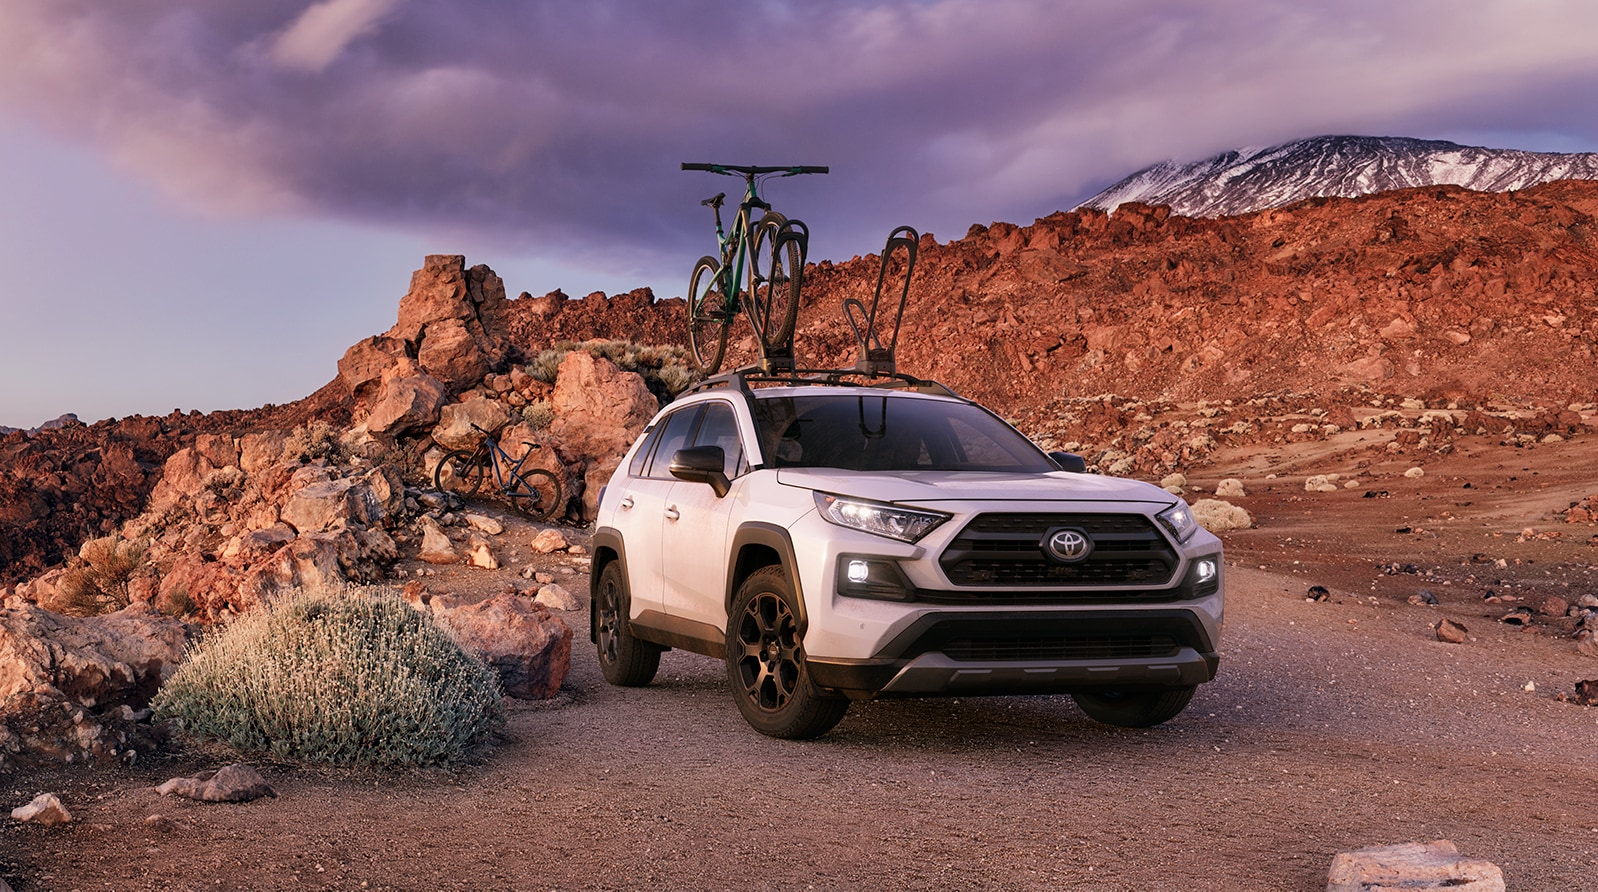 Performance features of the 2020 Toyota RAV4 at Johnstons Toyota | White 2020 RAV4 parked on top of a mountain